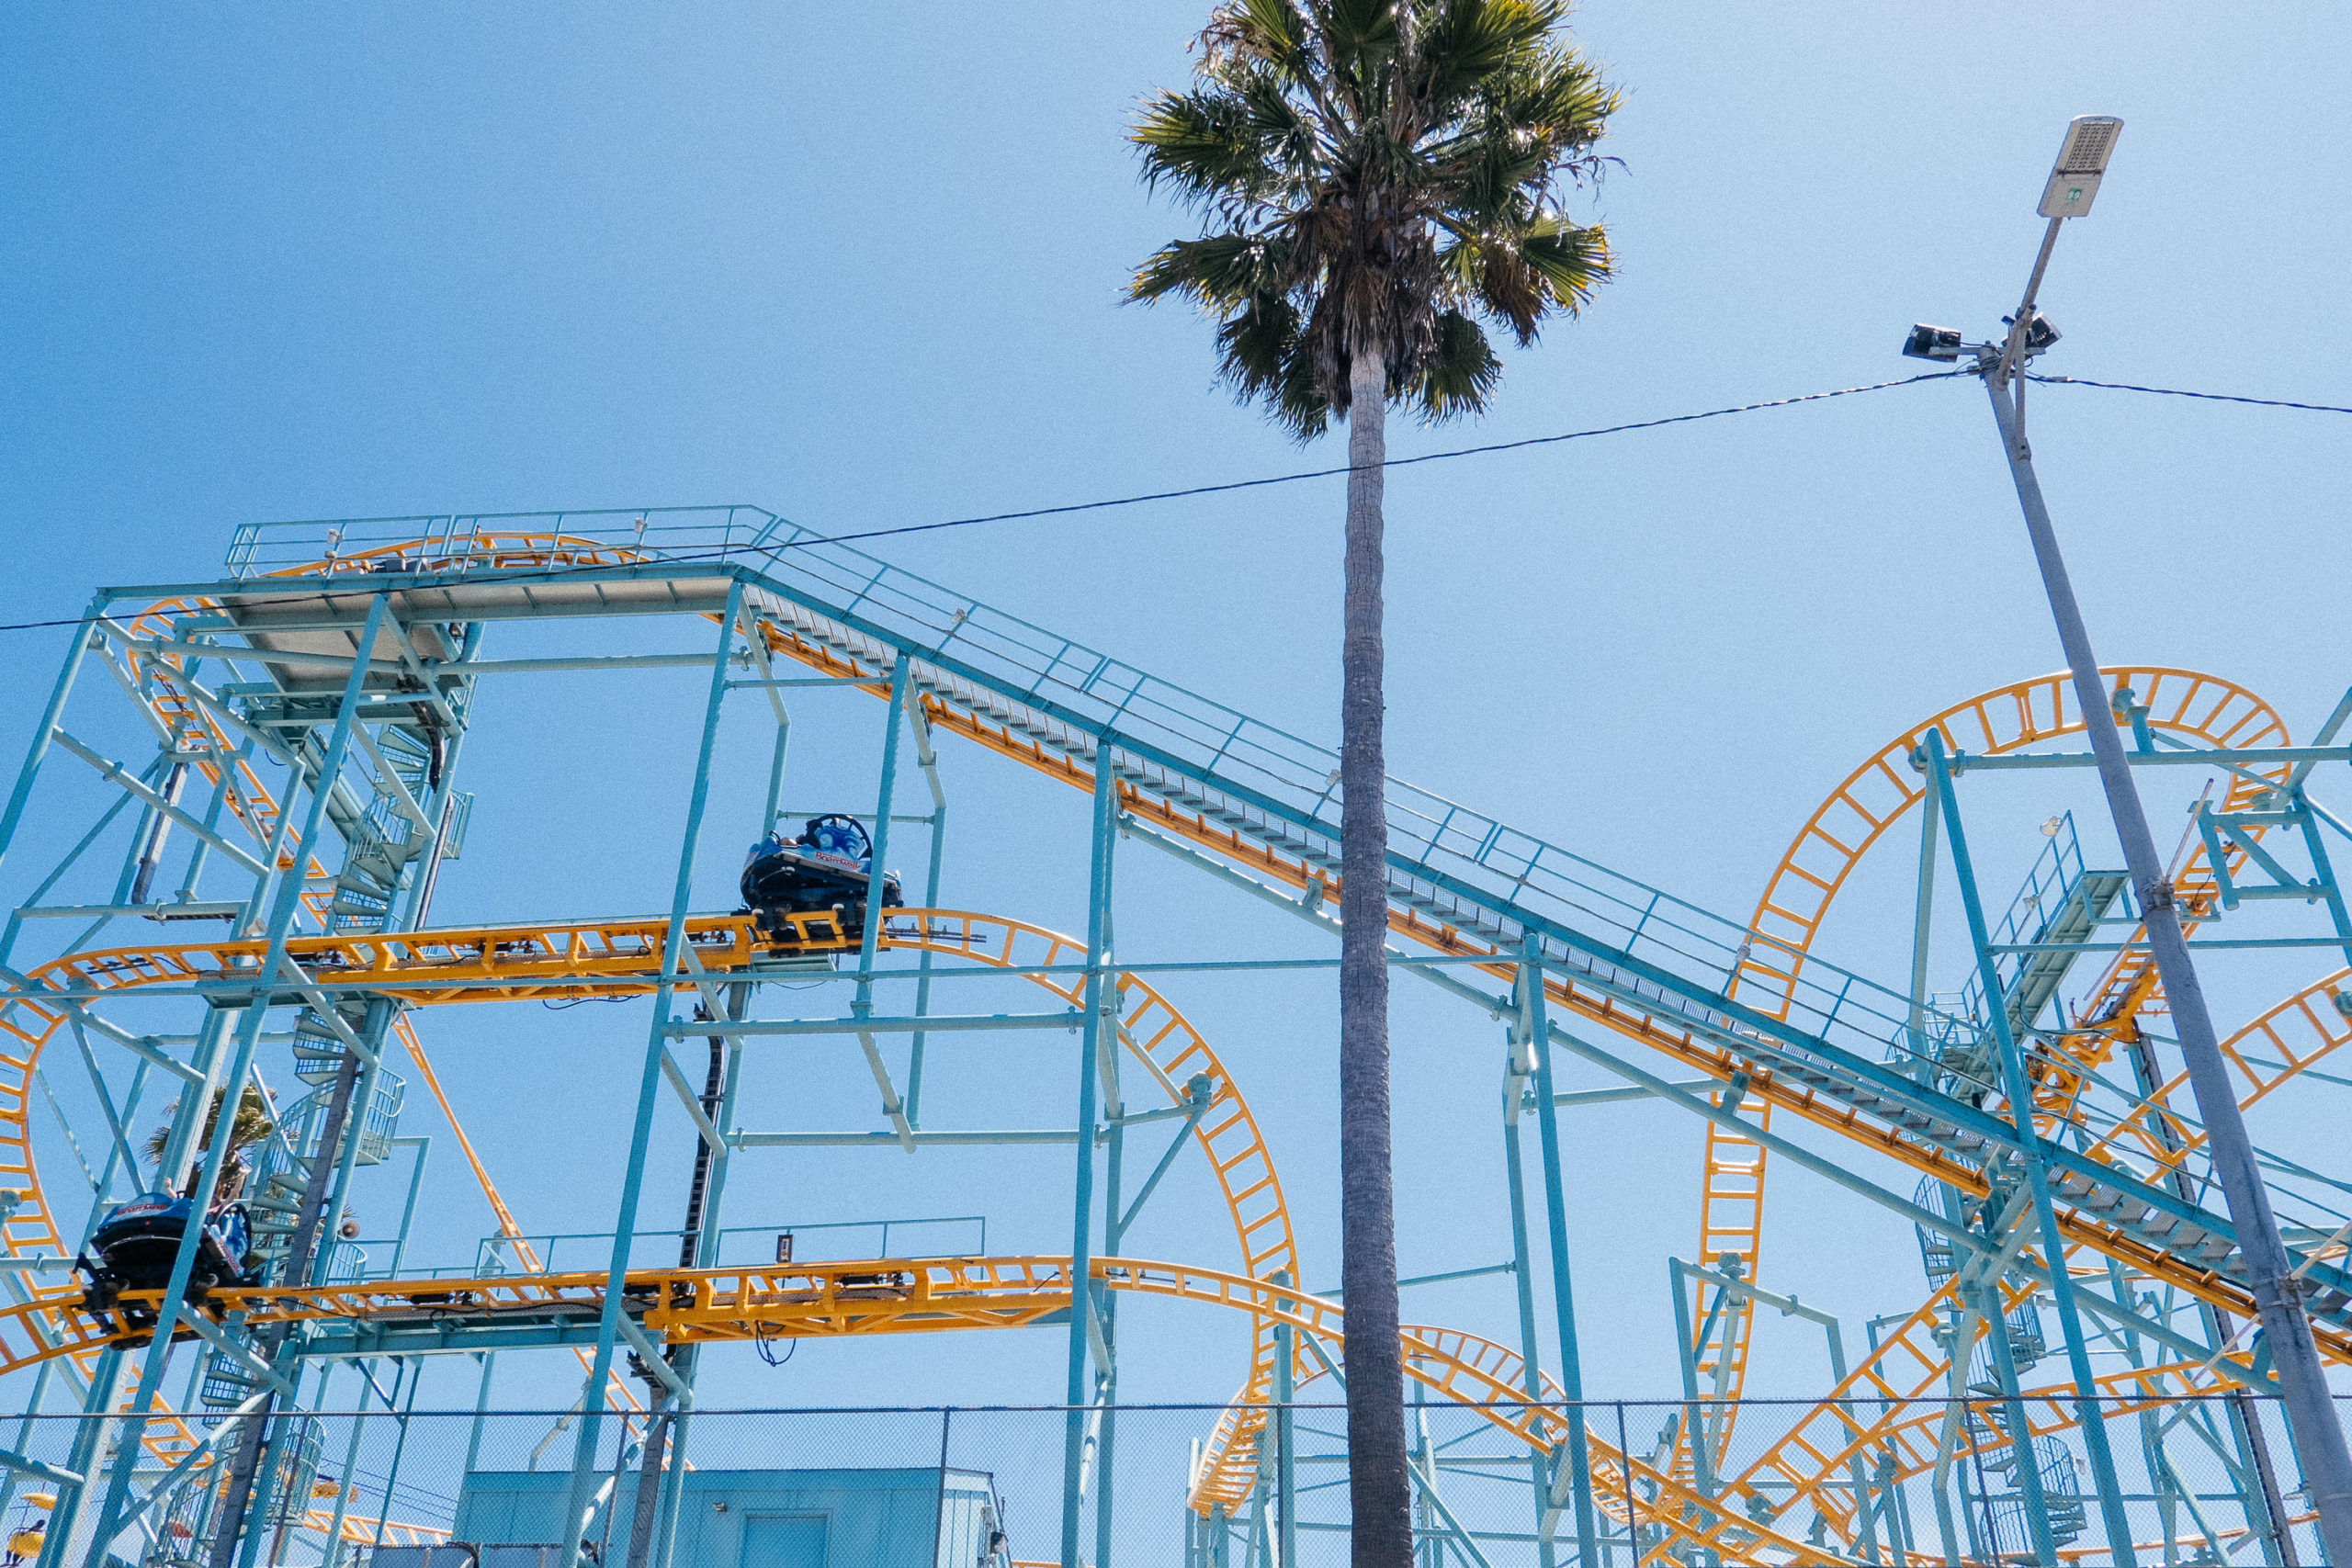 A teal and yellow metal framed roller coaster against a blue sky and a single palm tree